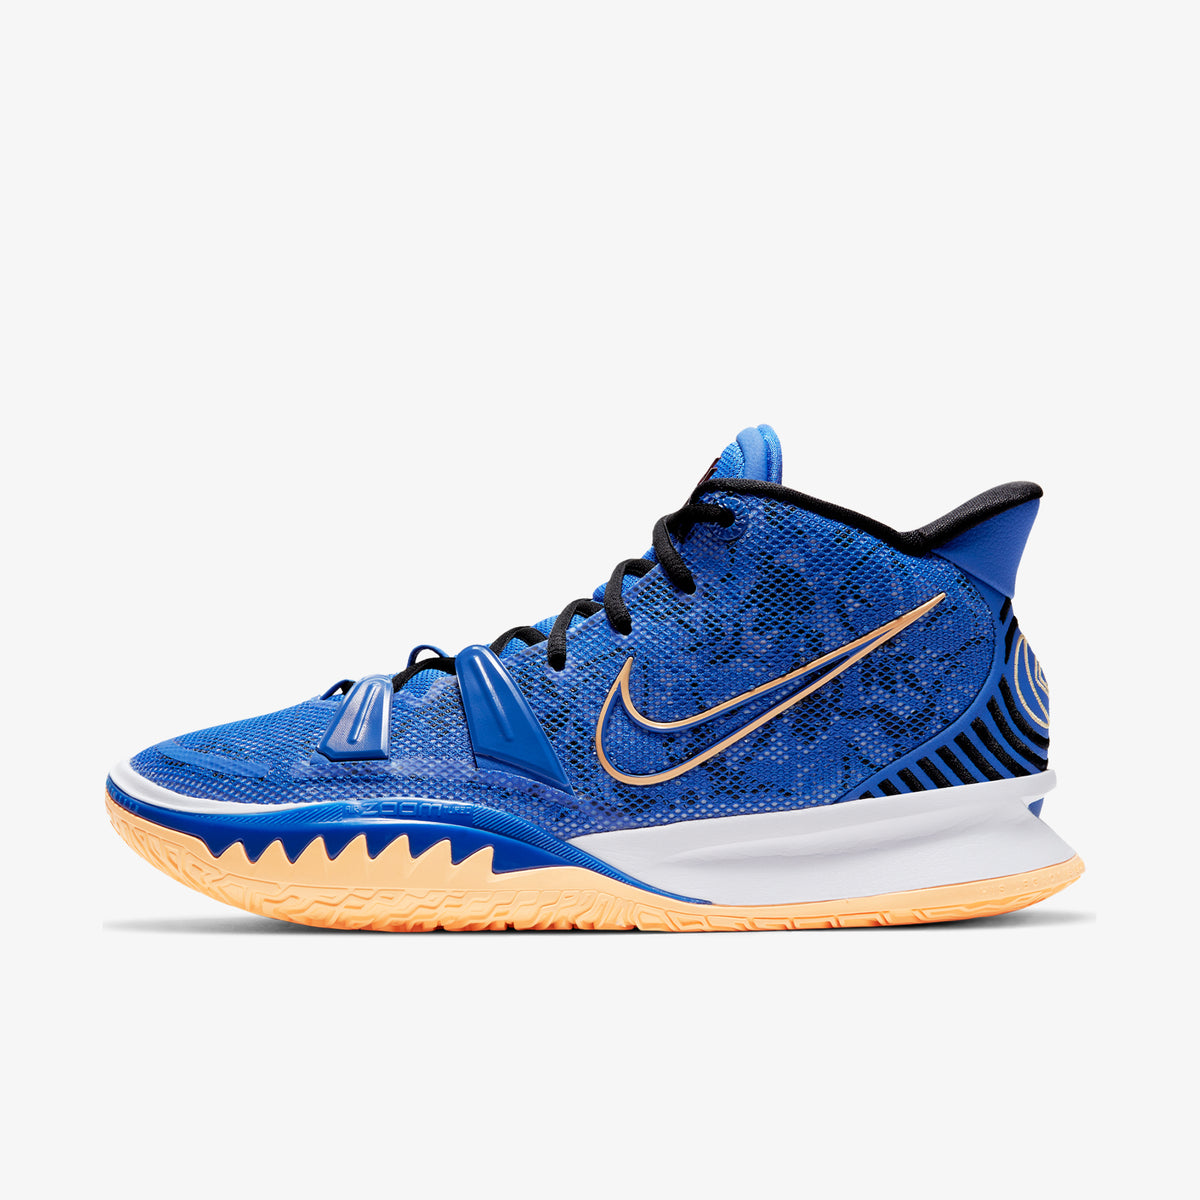 Kyrie 7 - 'Hyper Royal'